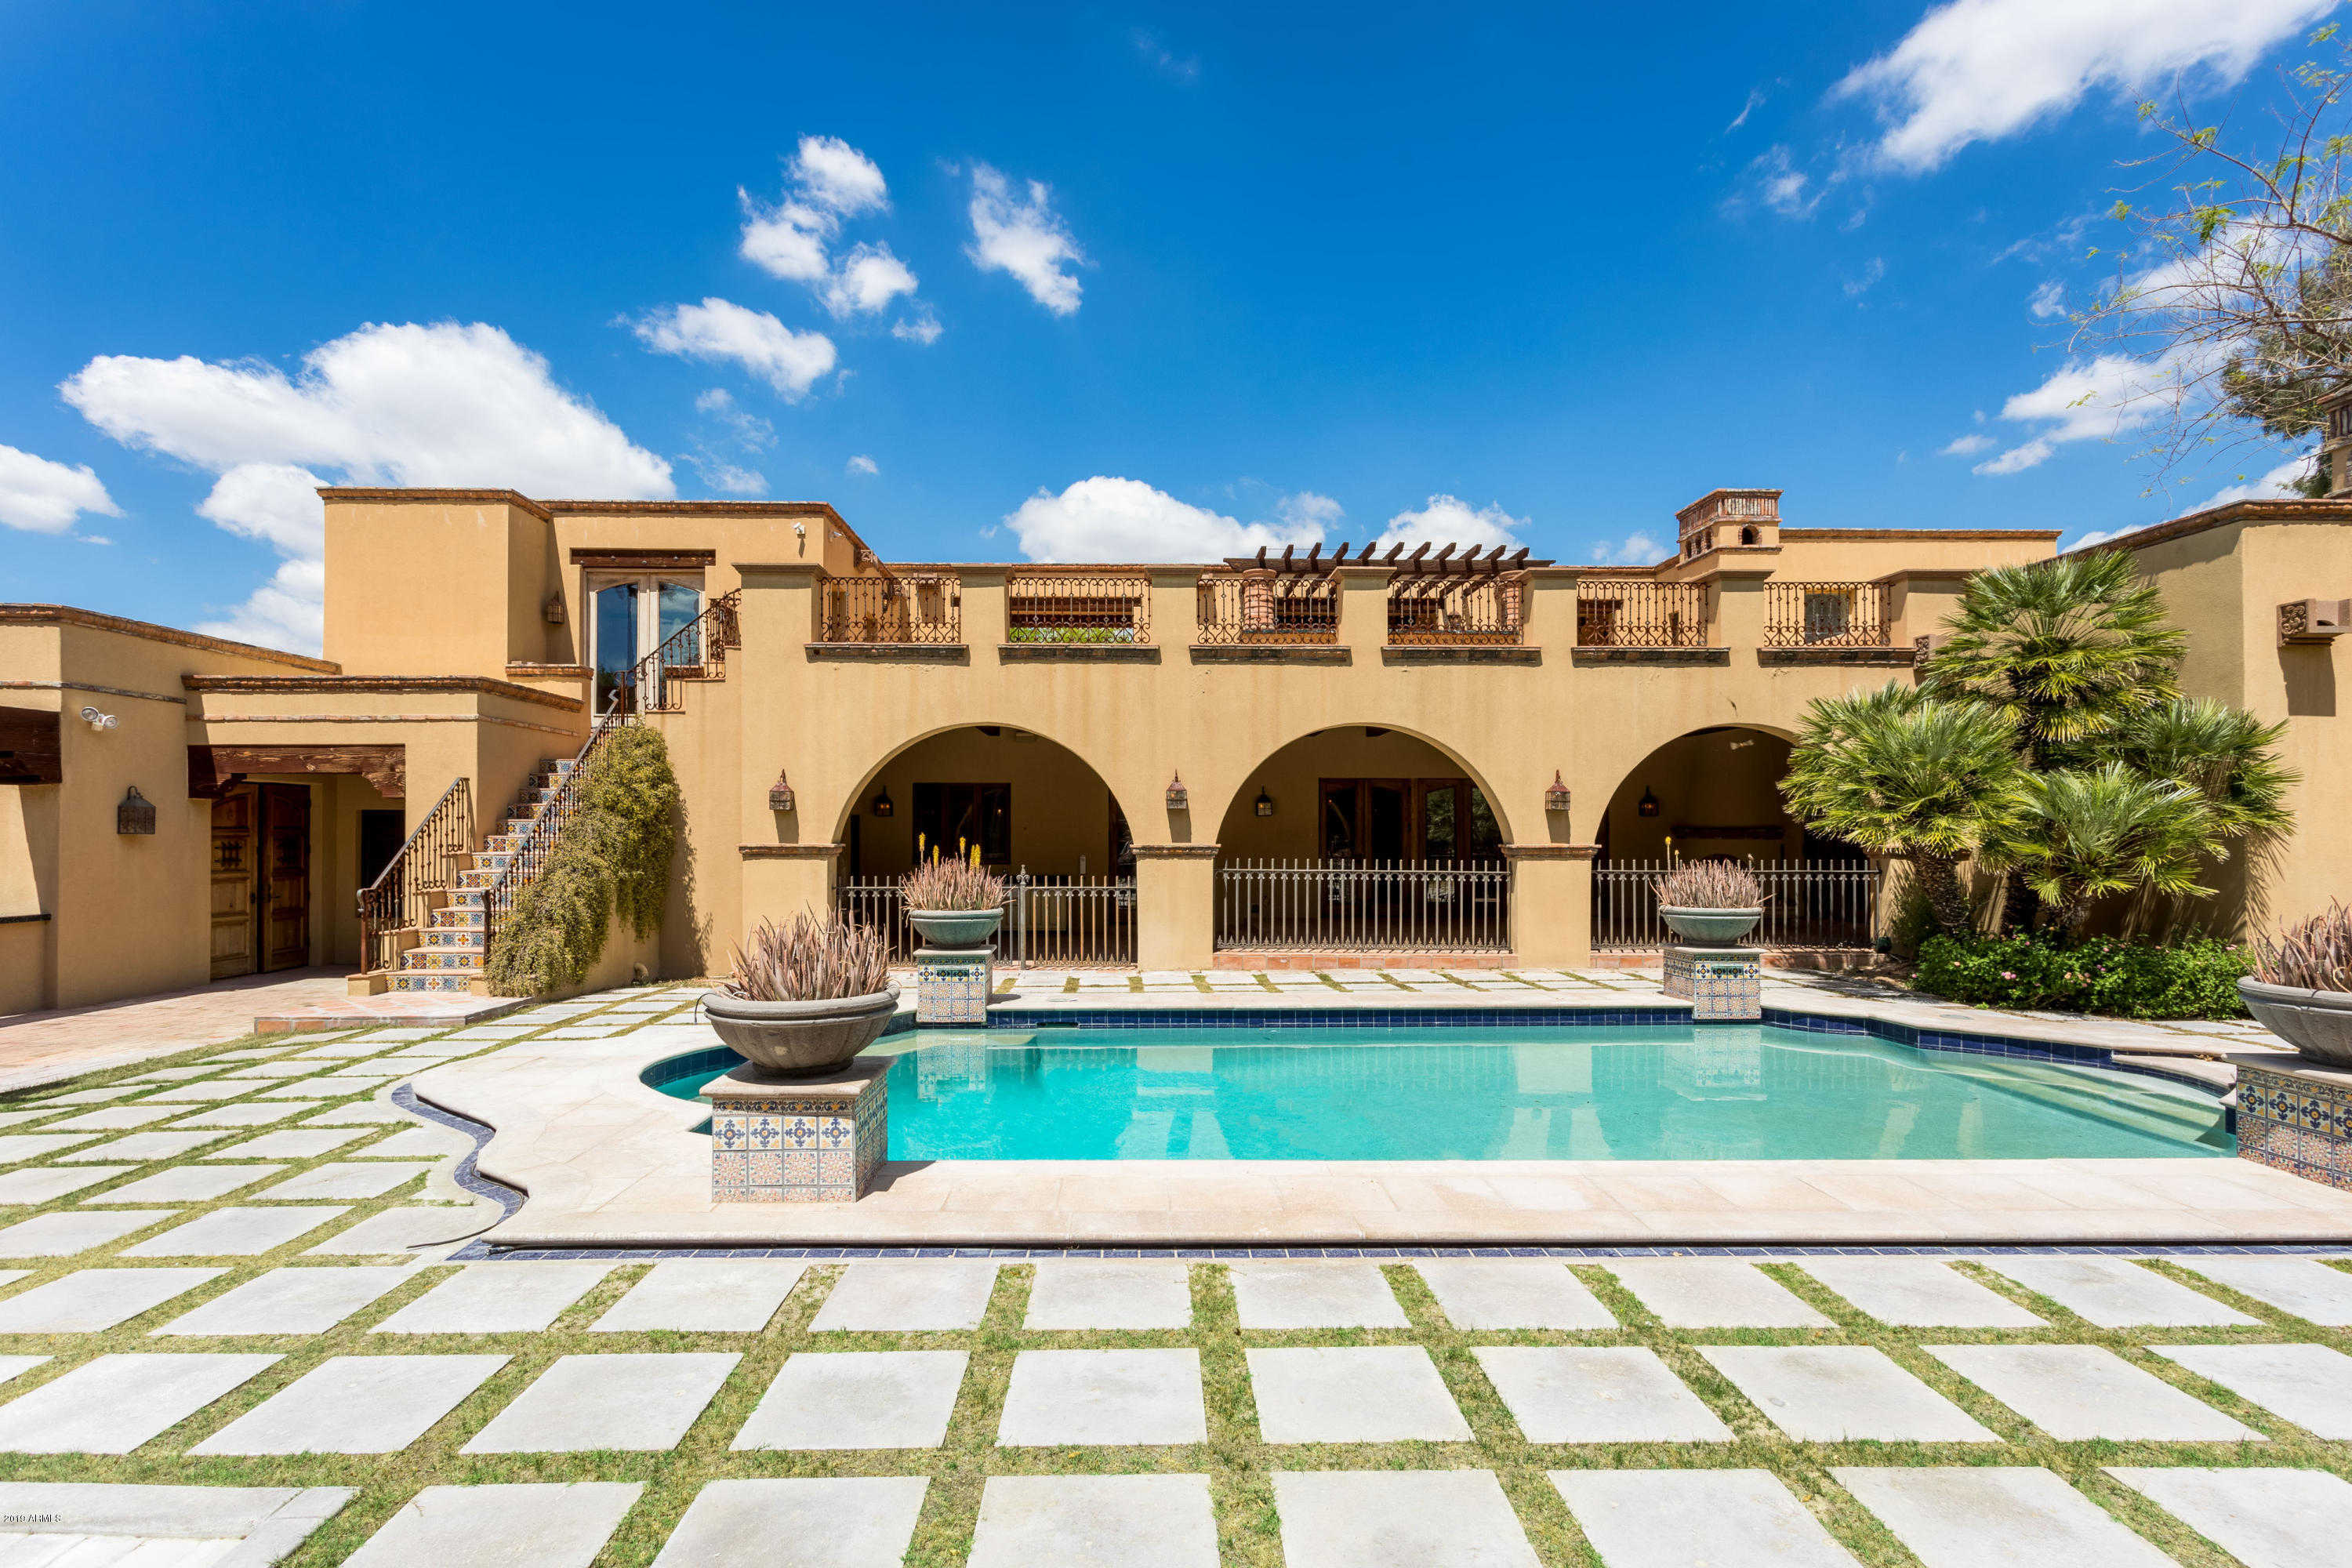 $3,495,000 - 7Br/7Ba - Home for Sale in Paradise Canyon Foothills, Paradise Valley